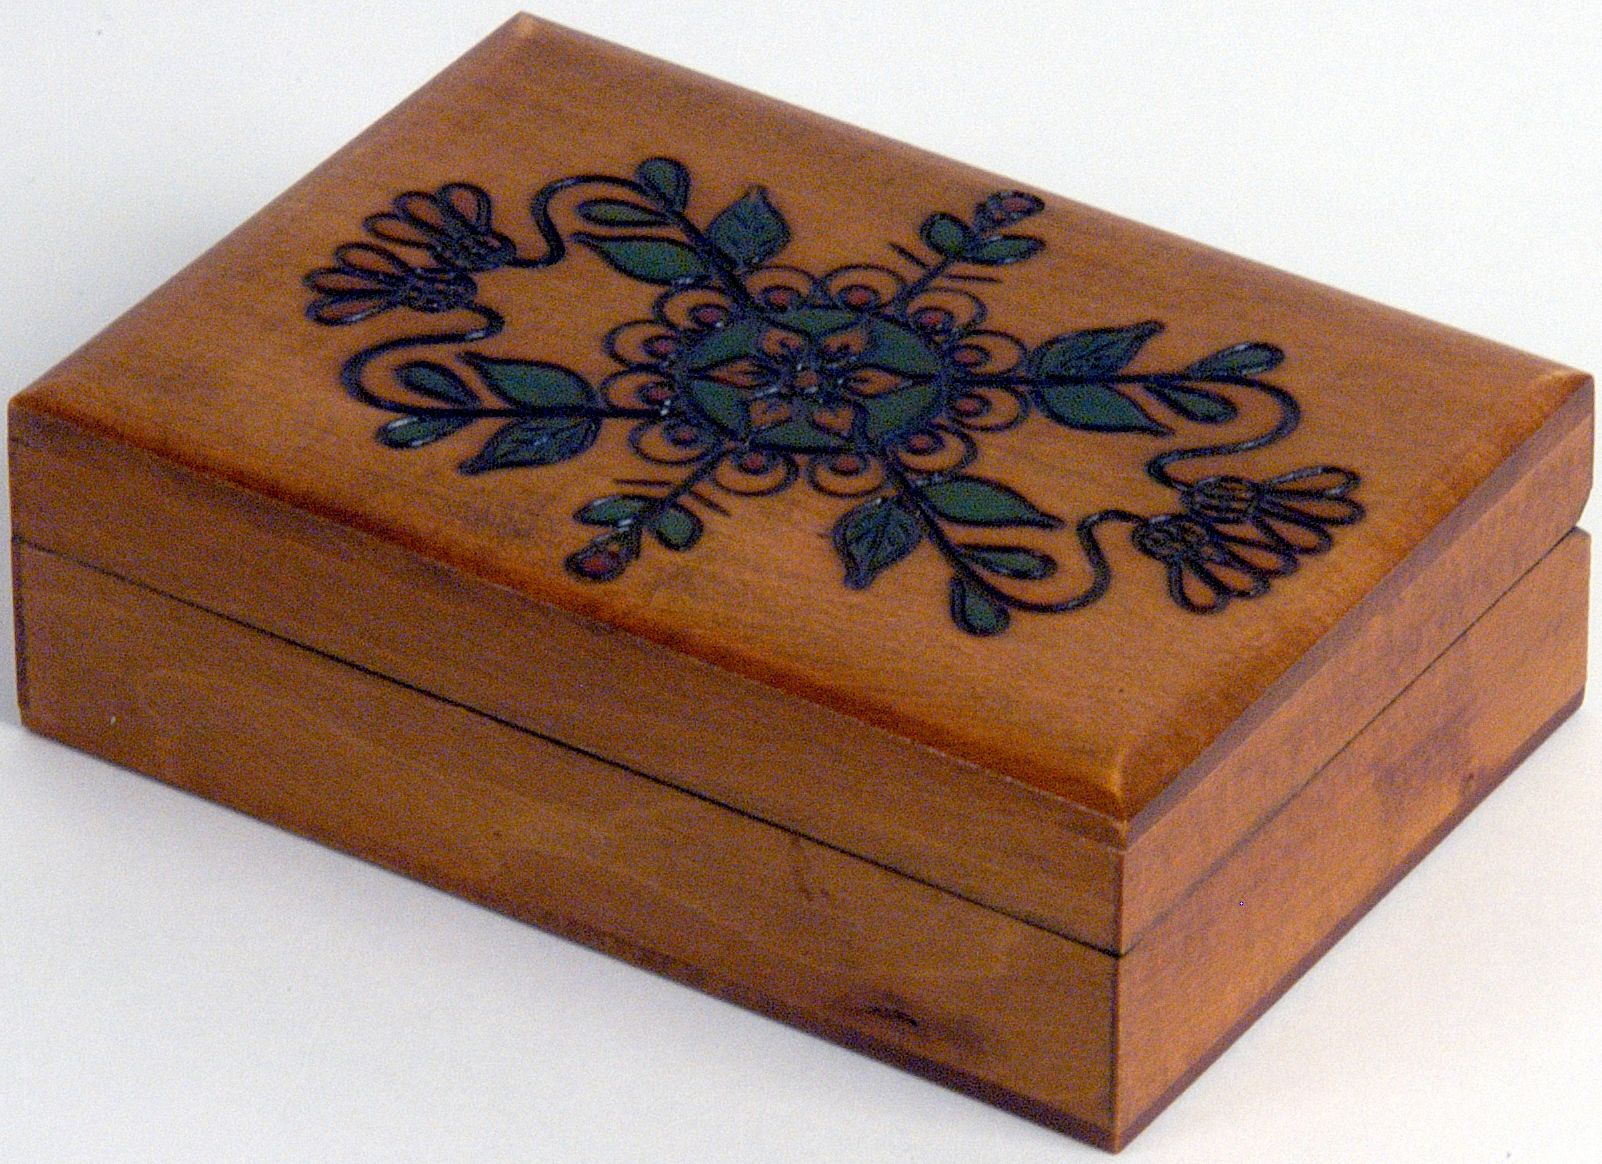 Decorative Wooden Boxes | Decorative Lacquered Wood Box Floral Design & Decorative Wooden Boxes | Decorative Lacquered Wood Box Floral ... Aboutintivar.Com